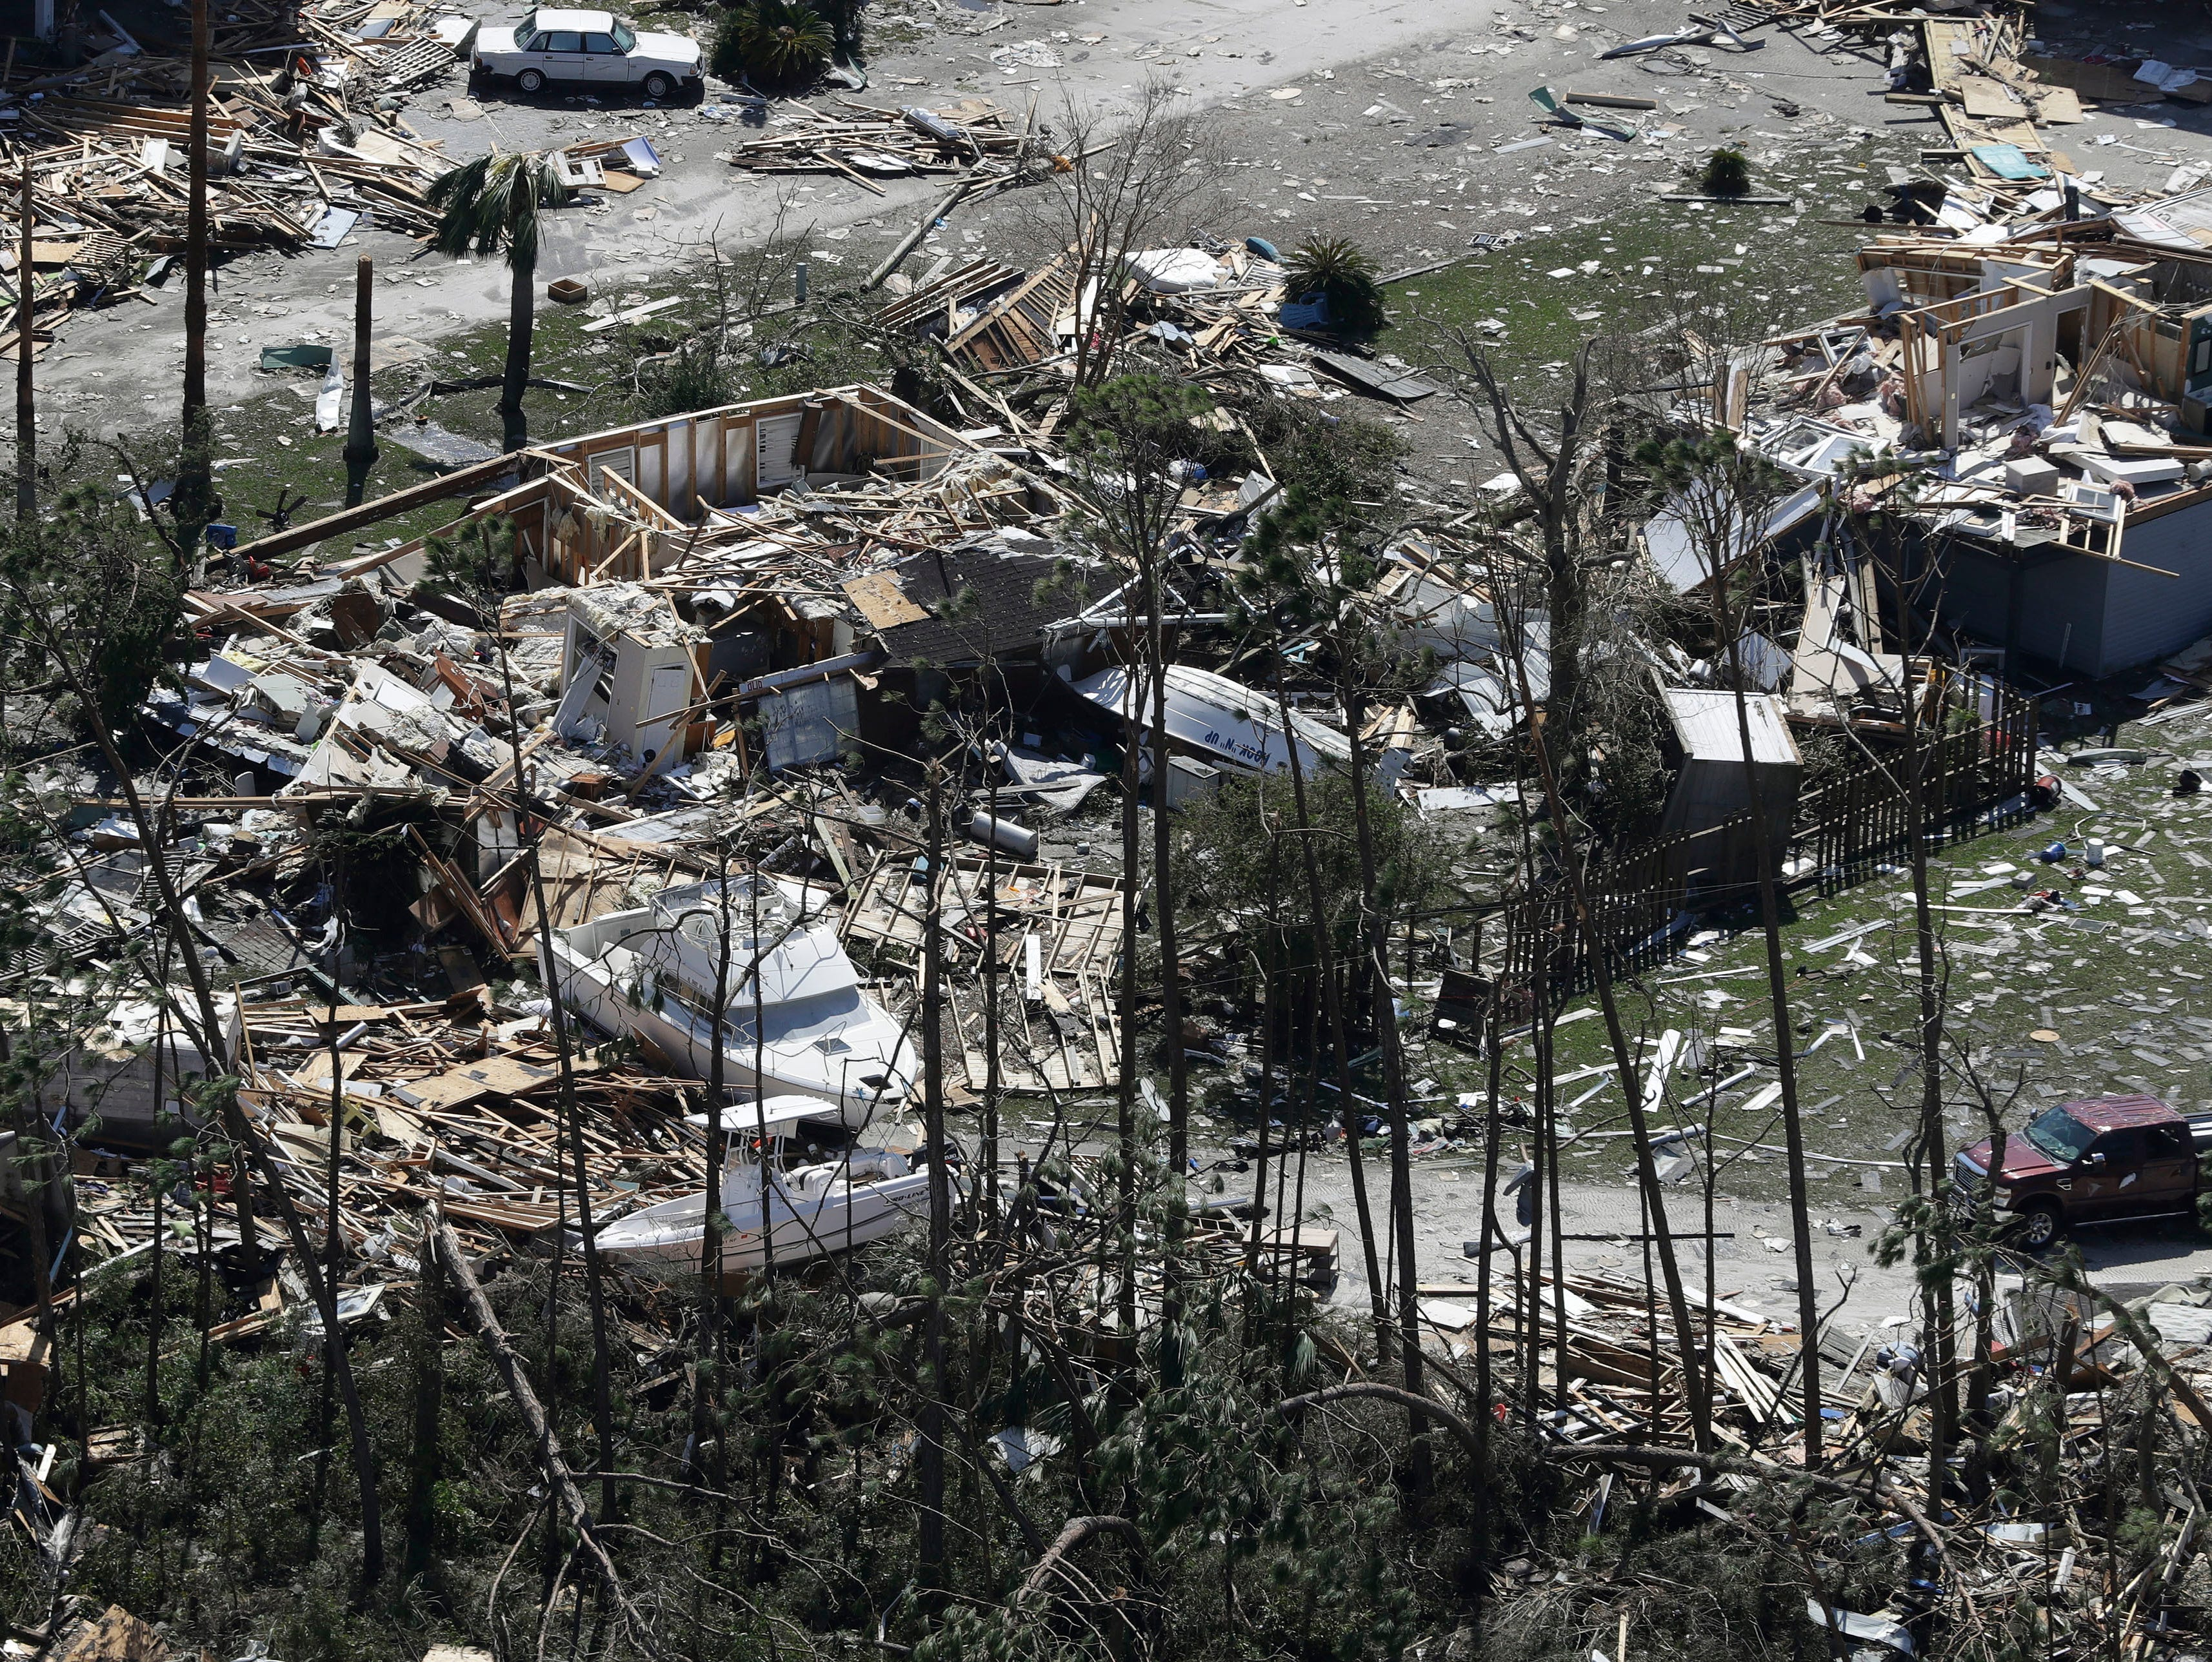 Boats lay among the debris from homes destroyed by Hurricane Michael Thursday, Oct. 11, 2018, in Mexico Beach, Fla. (AP Photo/Chris O'Meara)